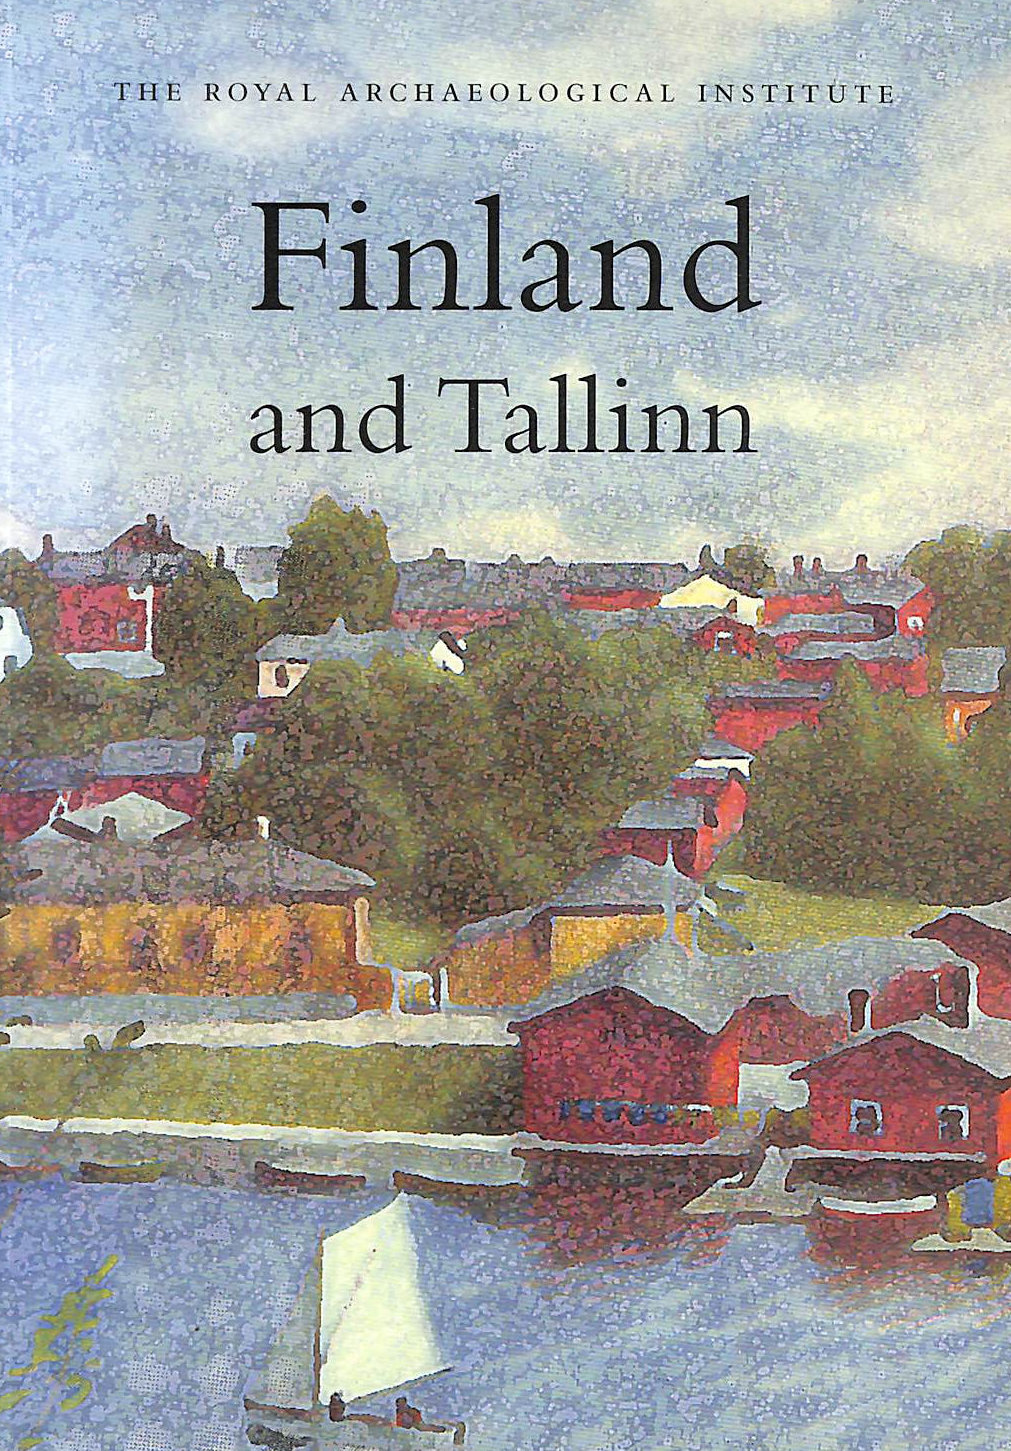 Image for Finland and Tallinn: Report and proceedings of the 151st Summer Meeting of the Royal Archaeological Institute in 2005